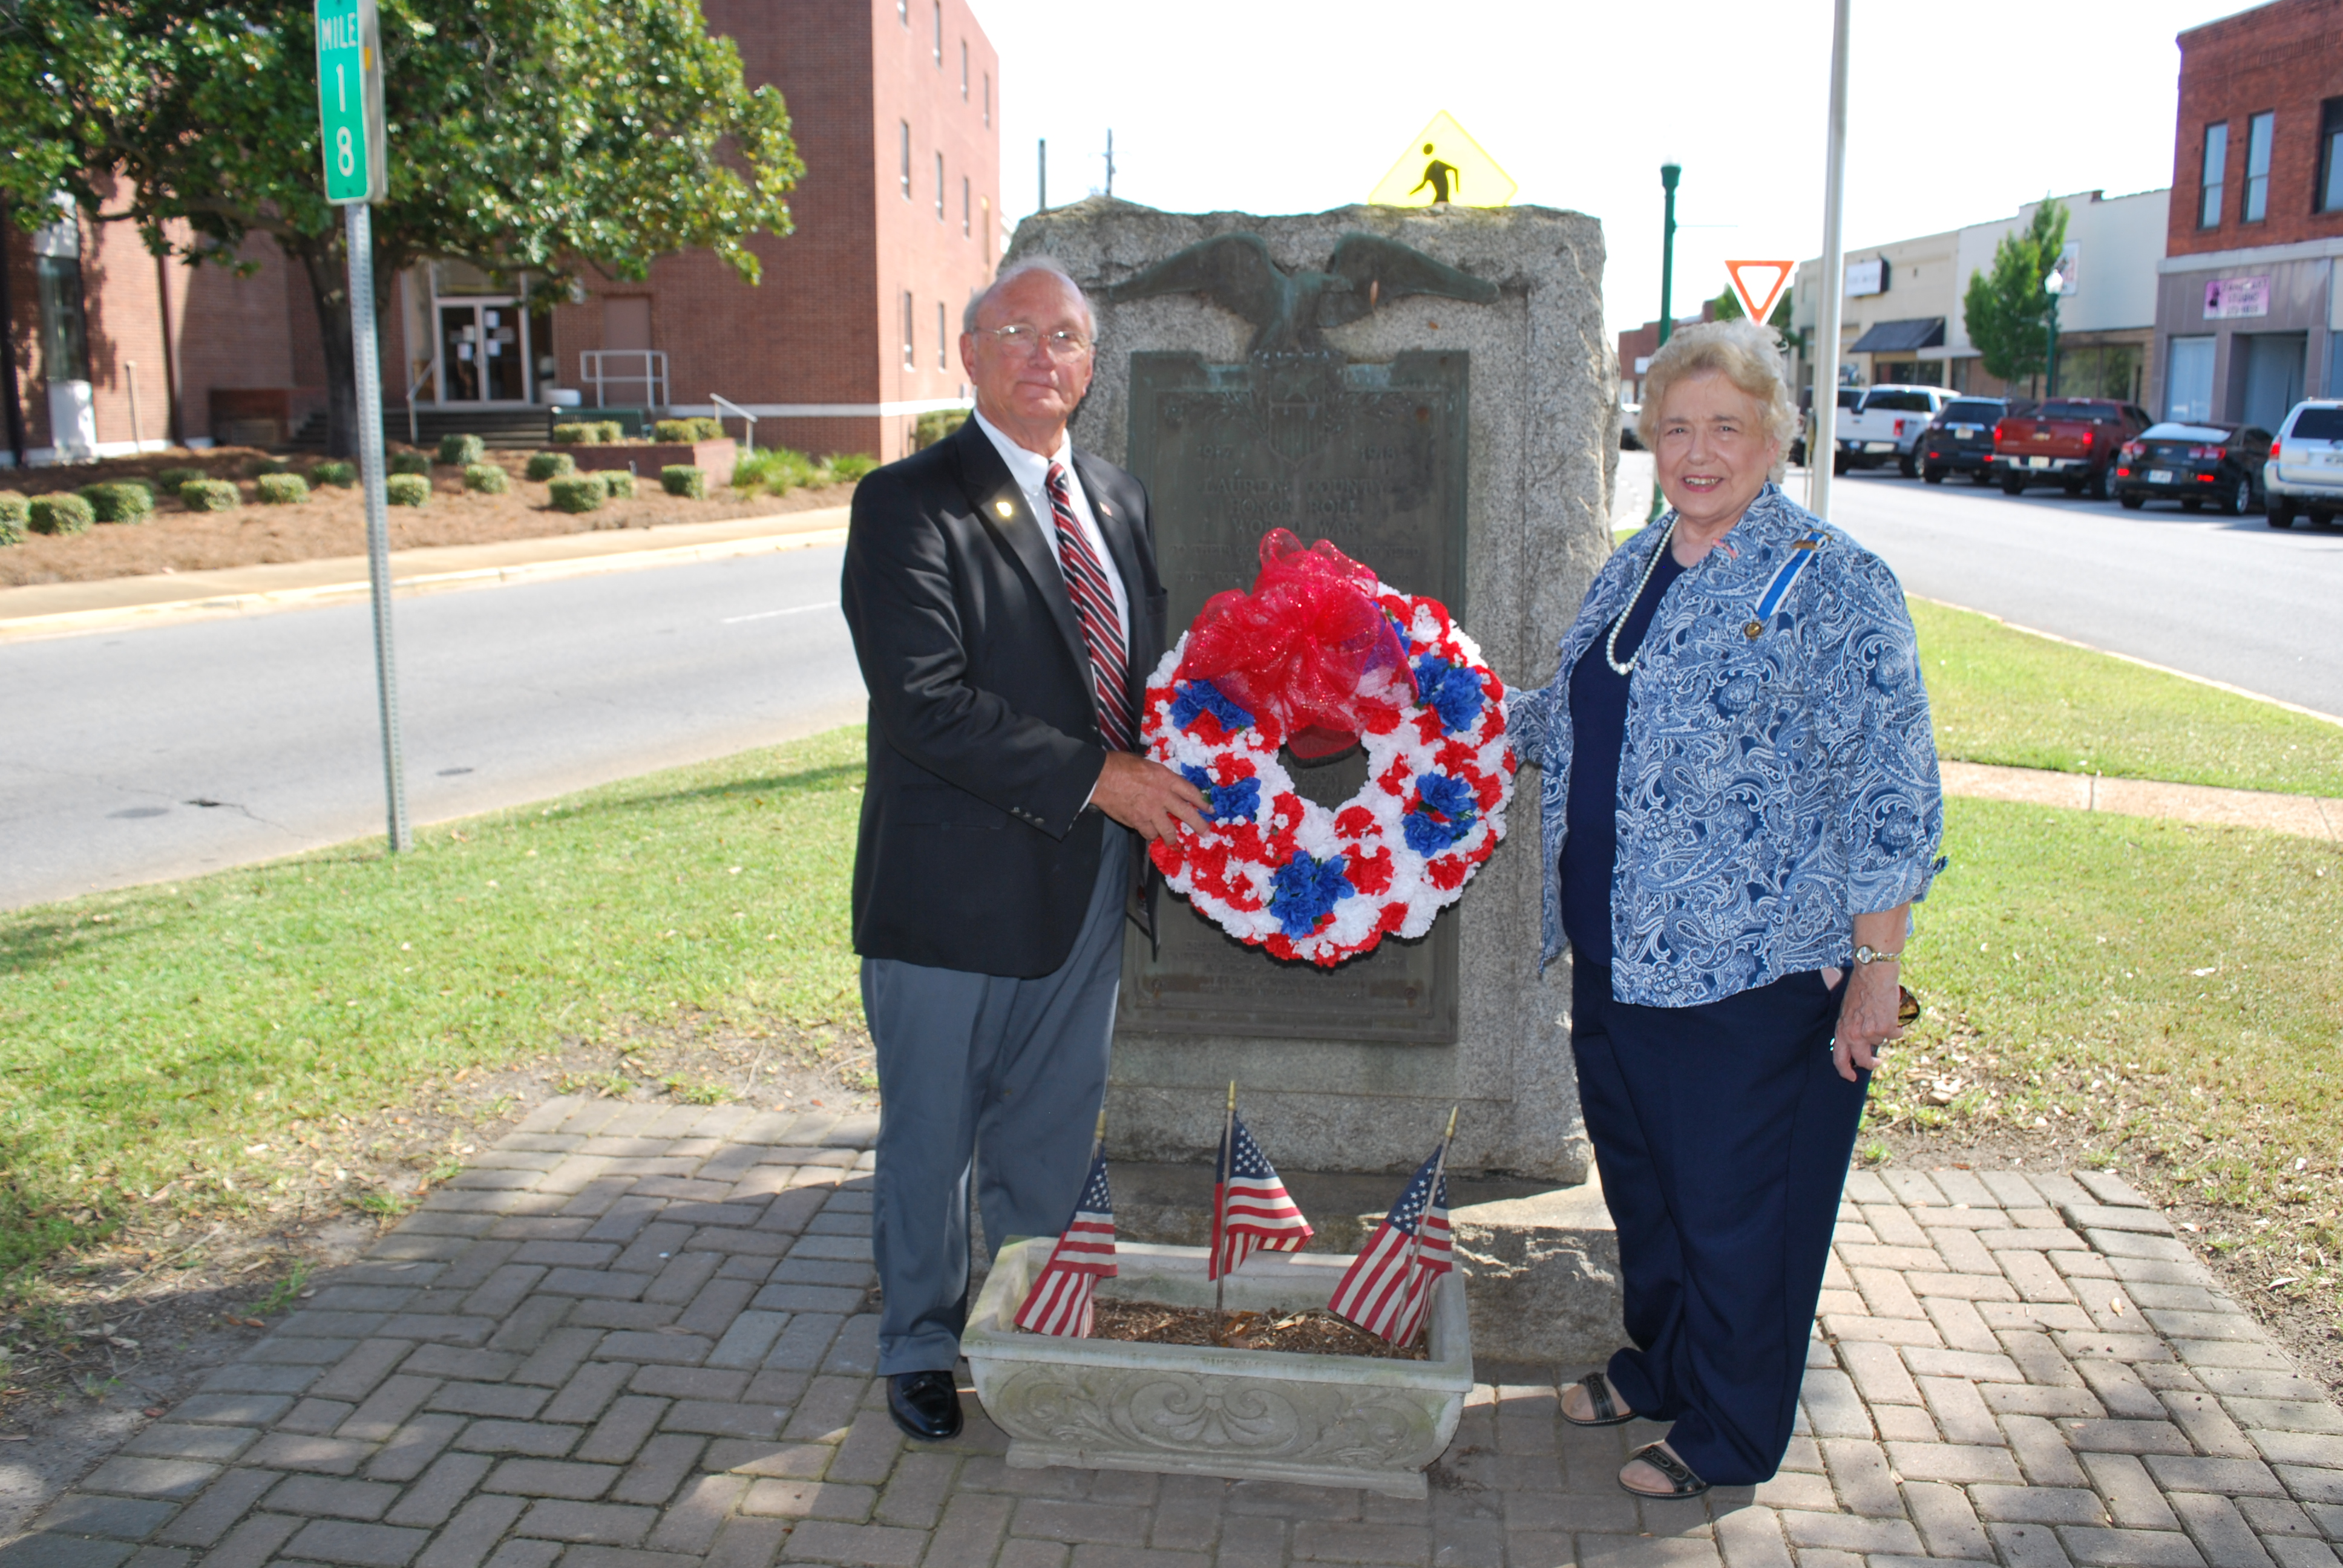 A elderly man and a woman stand in front of the monument holding a red, white, and blue wreath